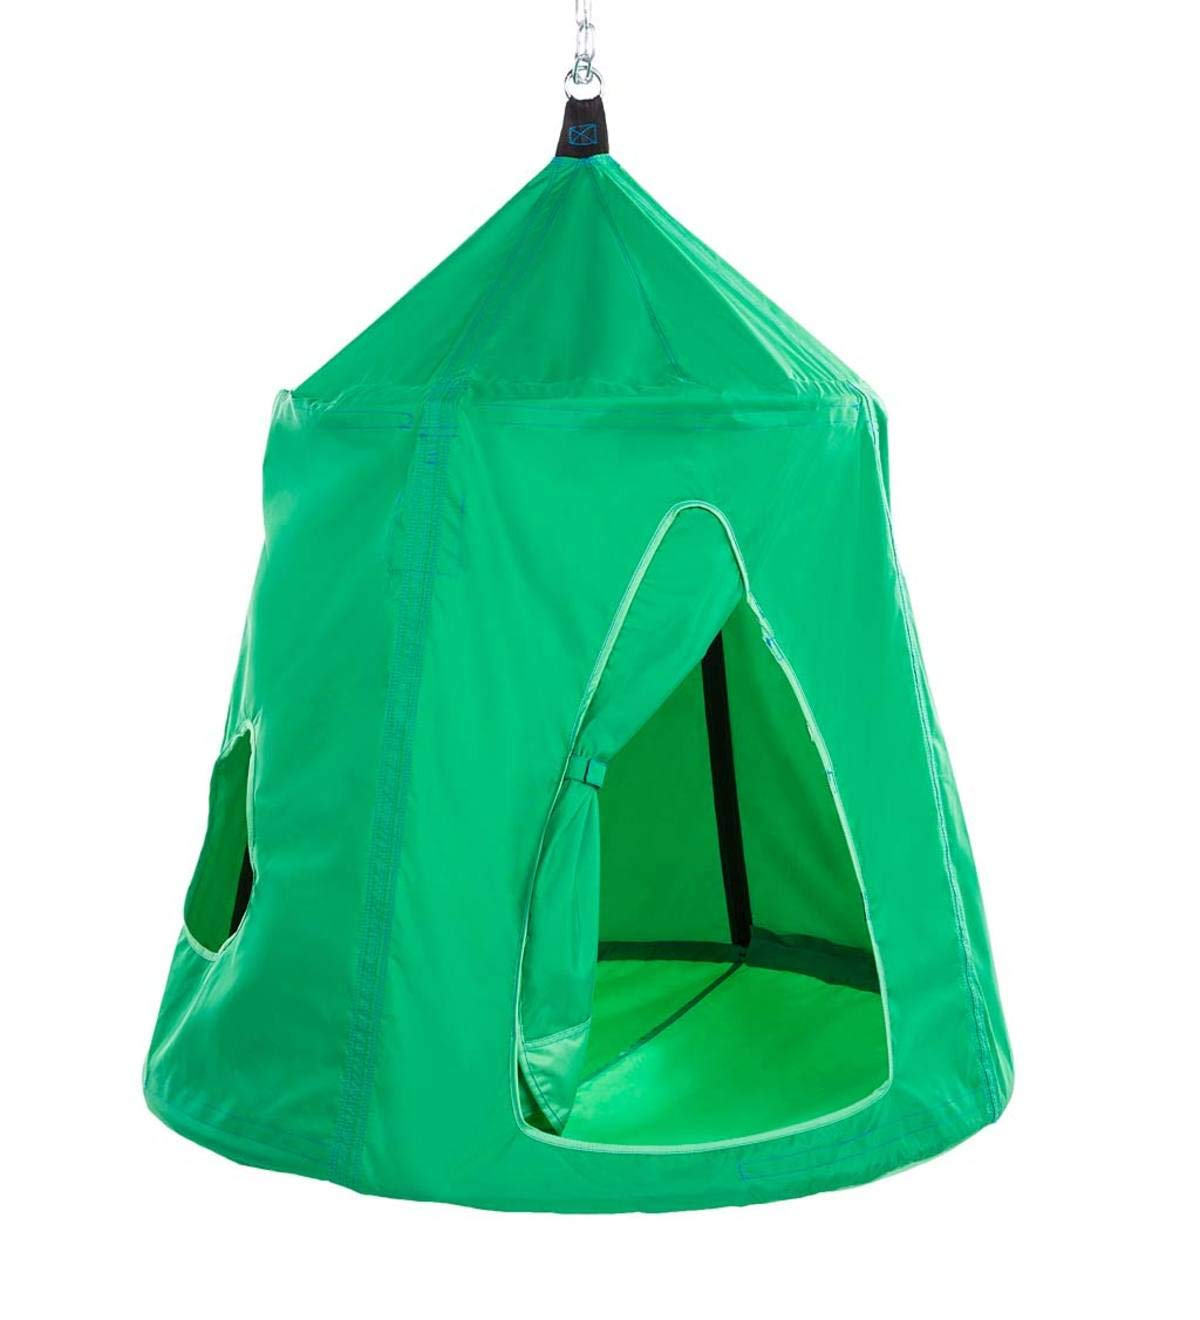 HearthSong Go! HugglePod Hangout Portable Hanging Tree Tent - Spring Green by HearthSong